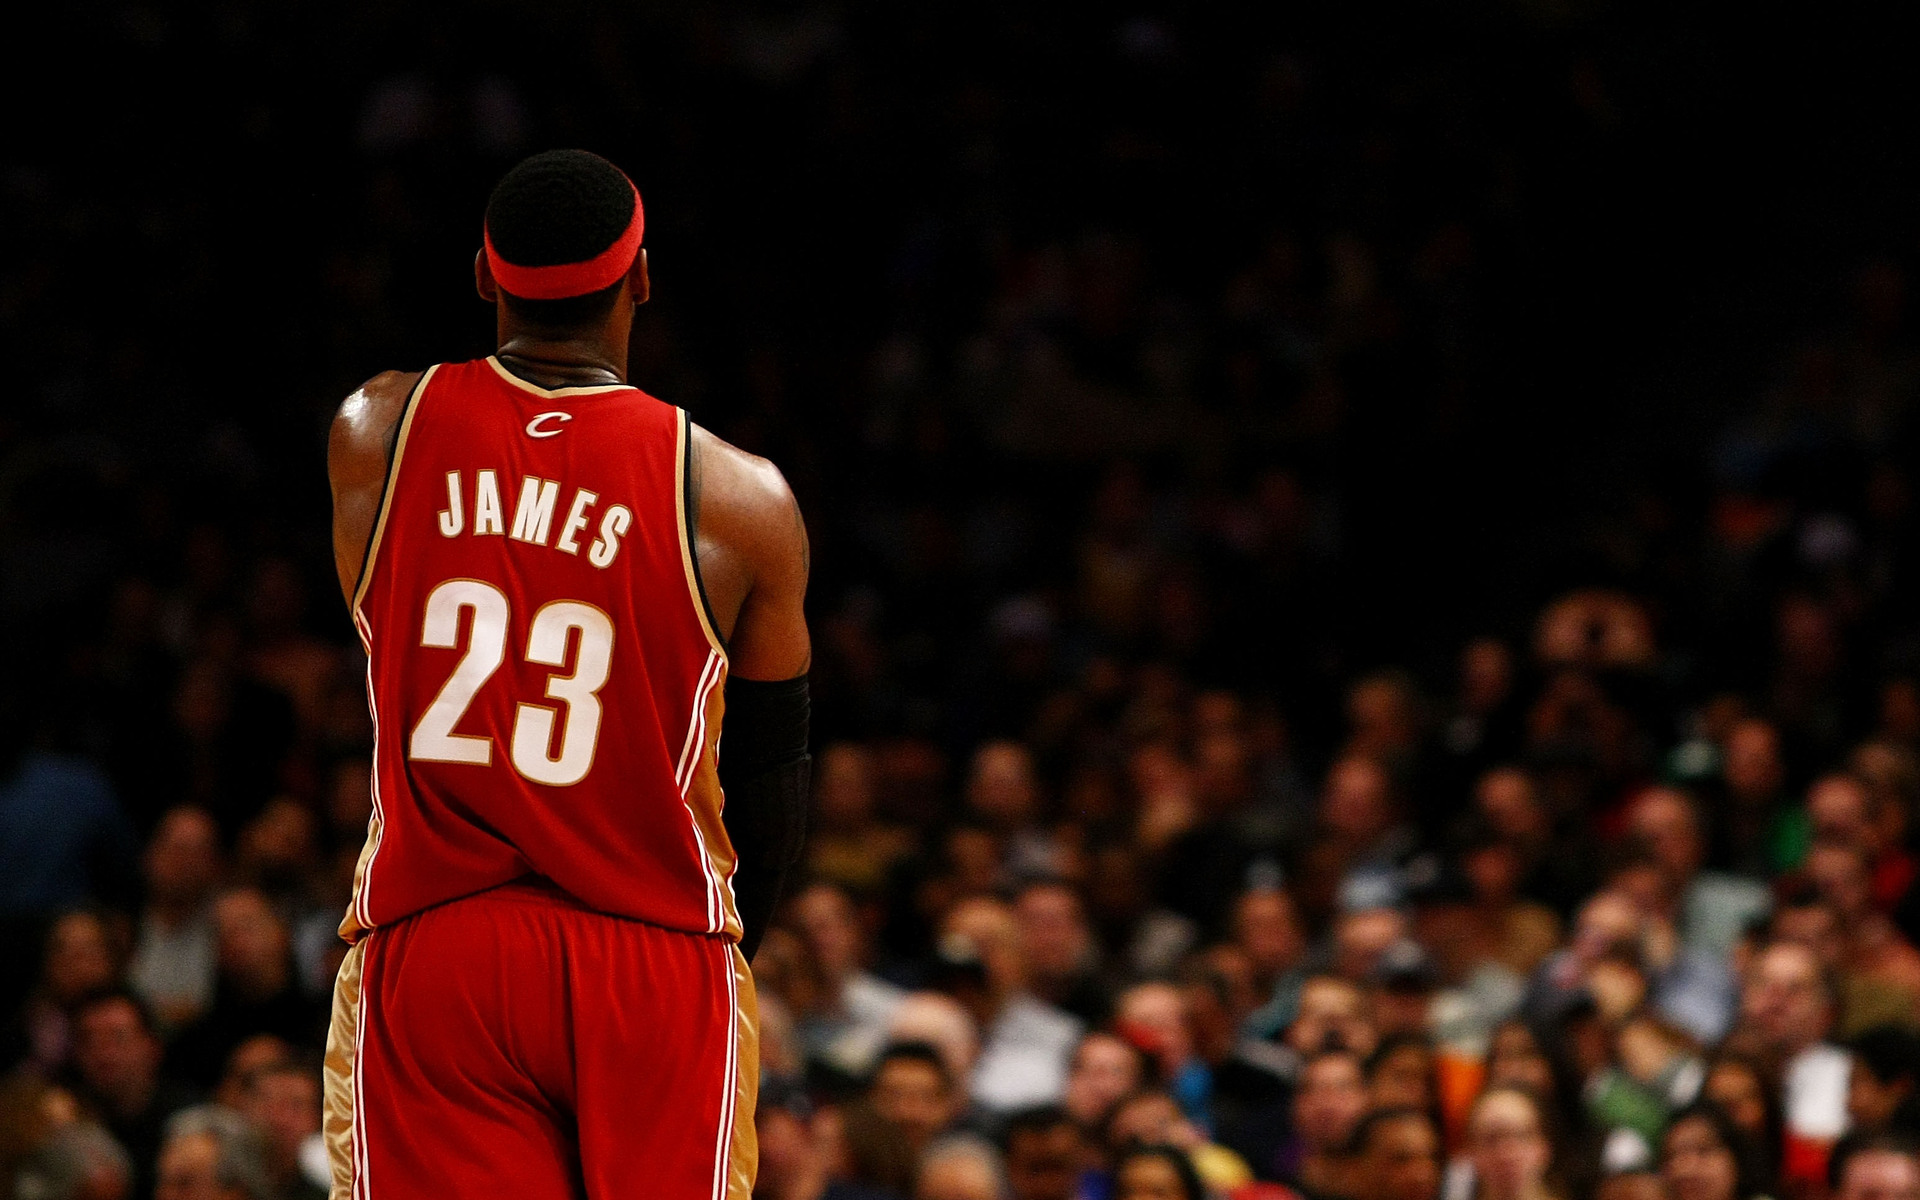 LeBron James Wallpaper 23